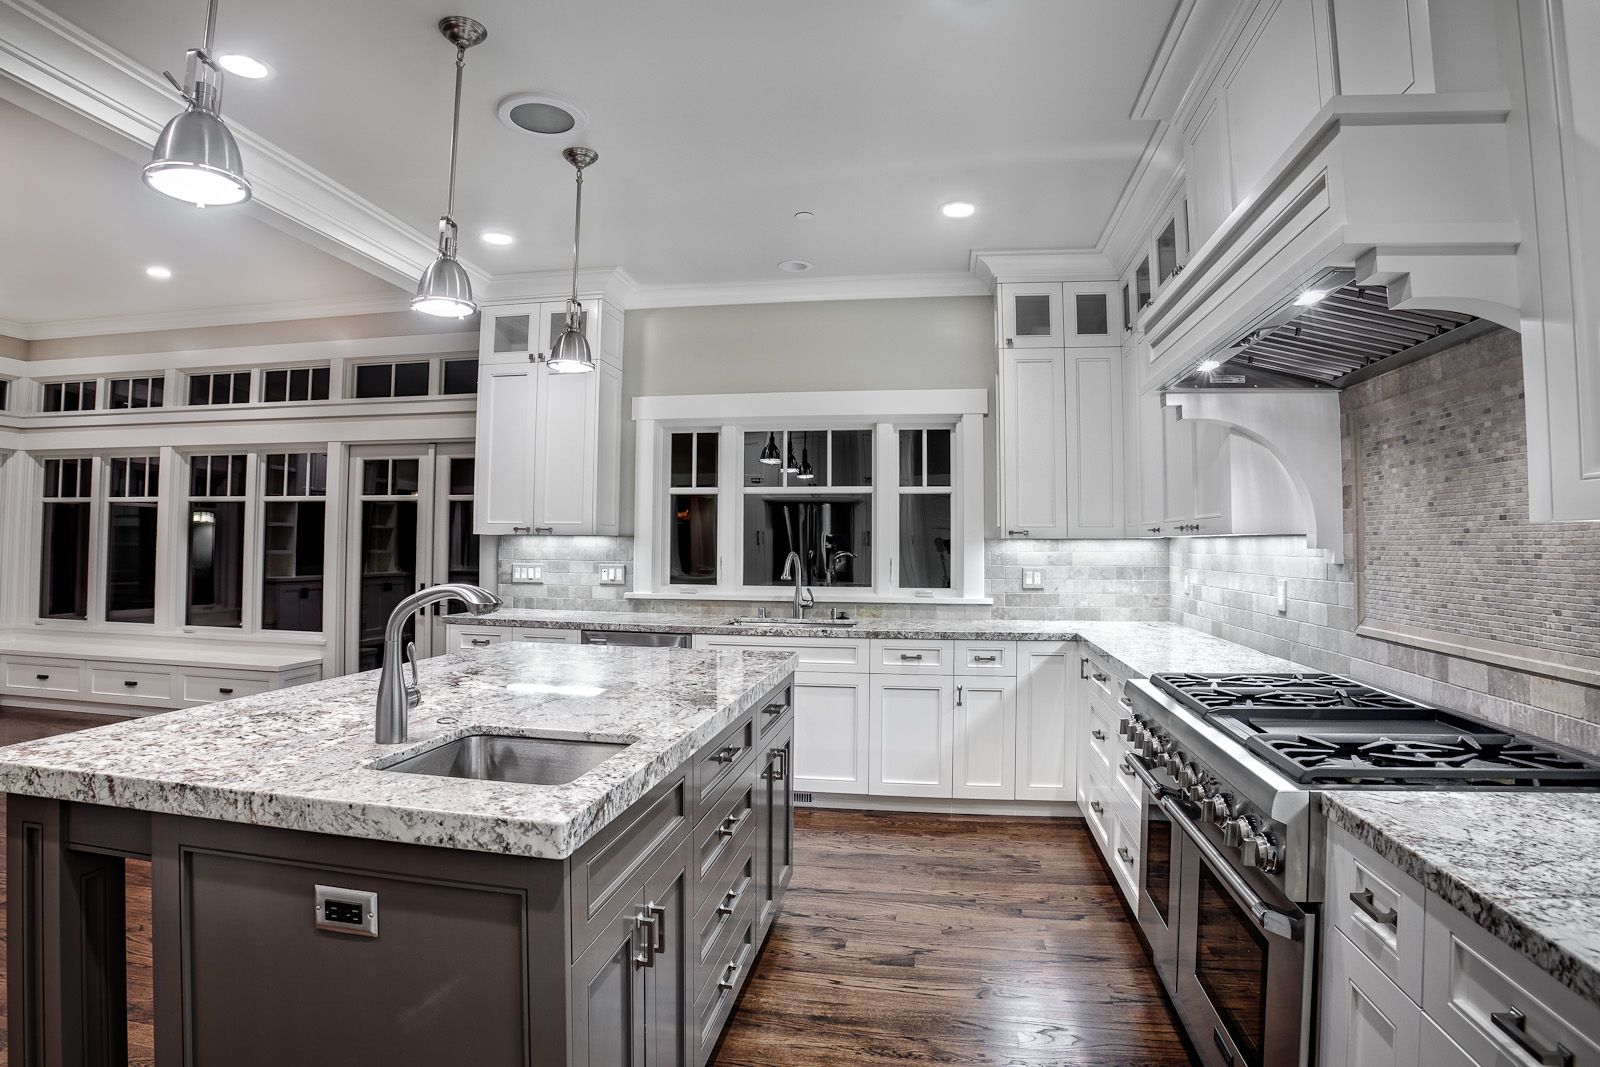 Of White Kitchens With Granite White Cabinets With White Granite Countertops